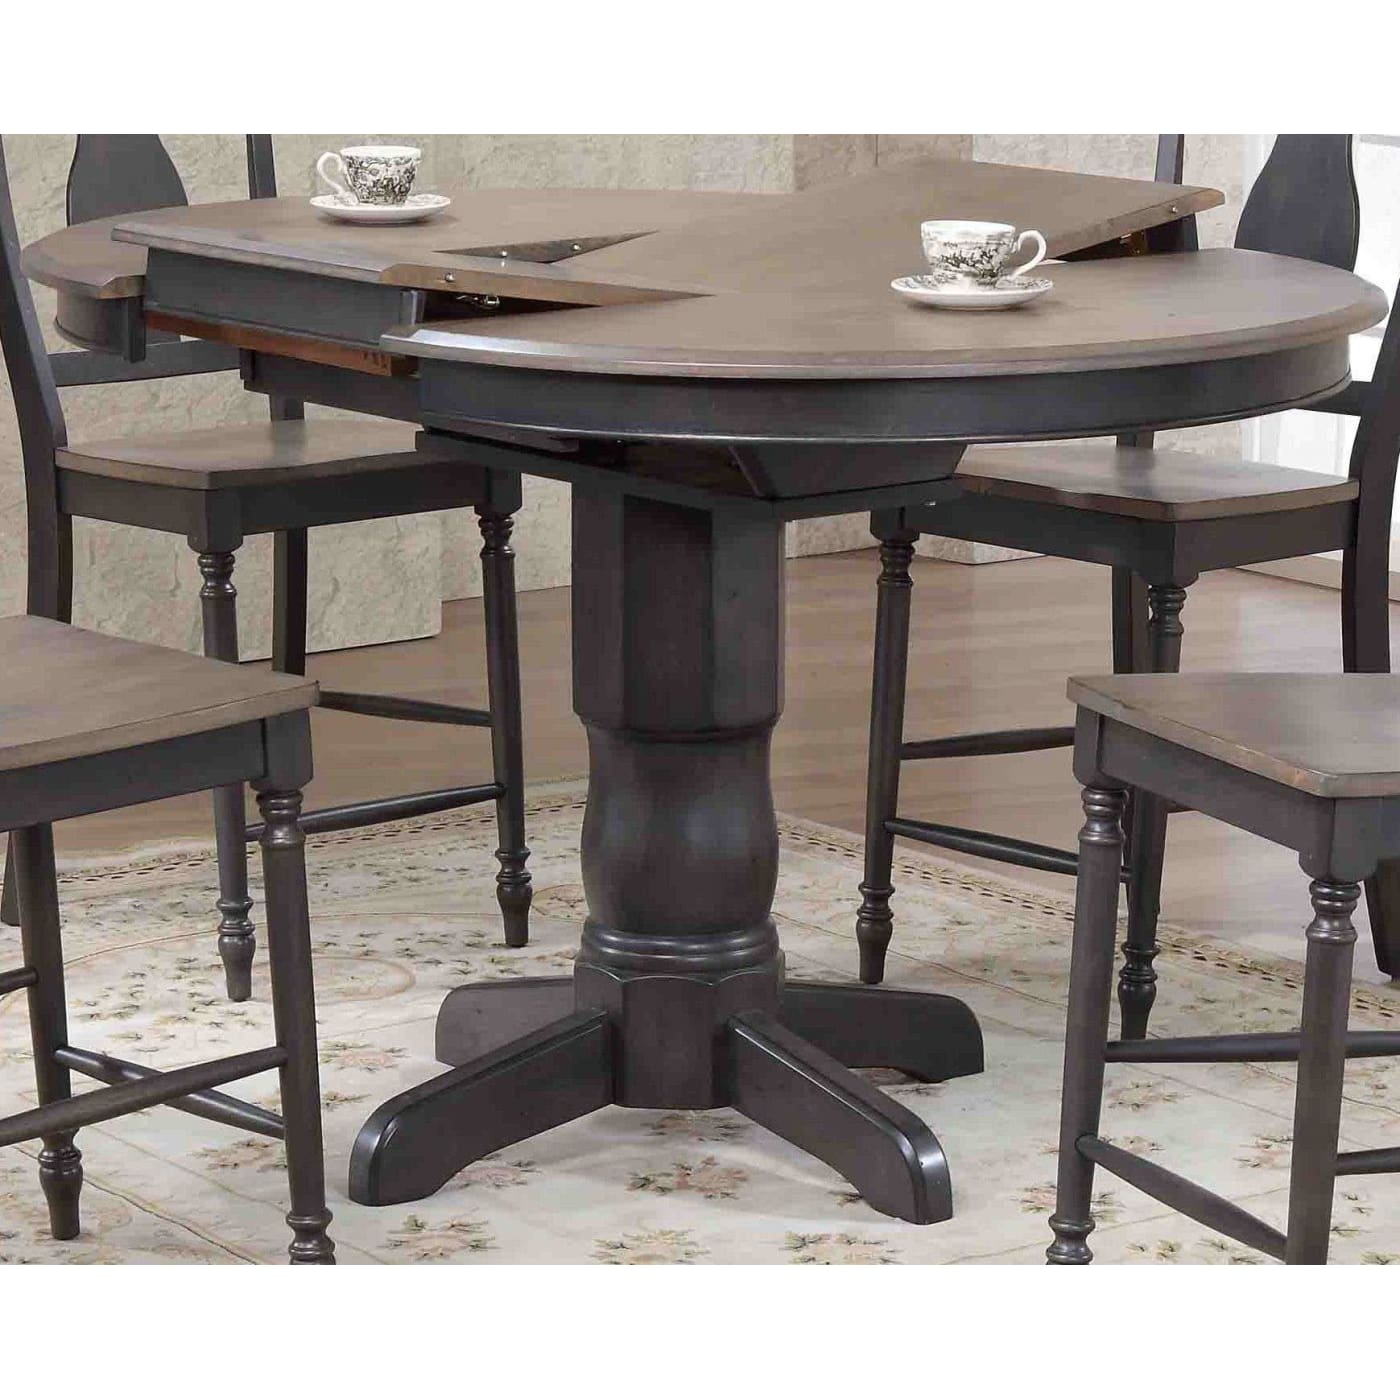 """Iconic Antiqued Grey & Black Stone 42"""" Round Counter Within Recent Darbonne 42'' Dining Tables (View 5 of 15)"""